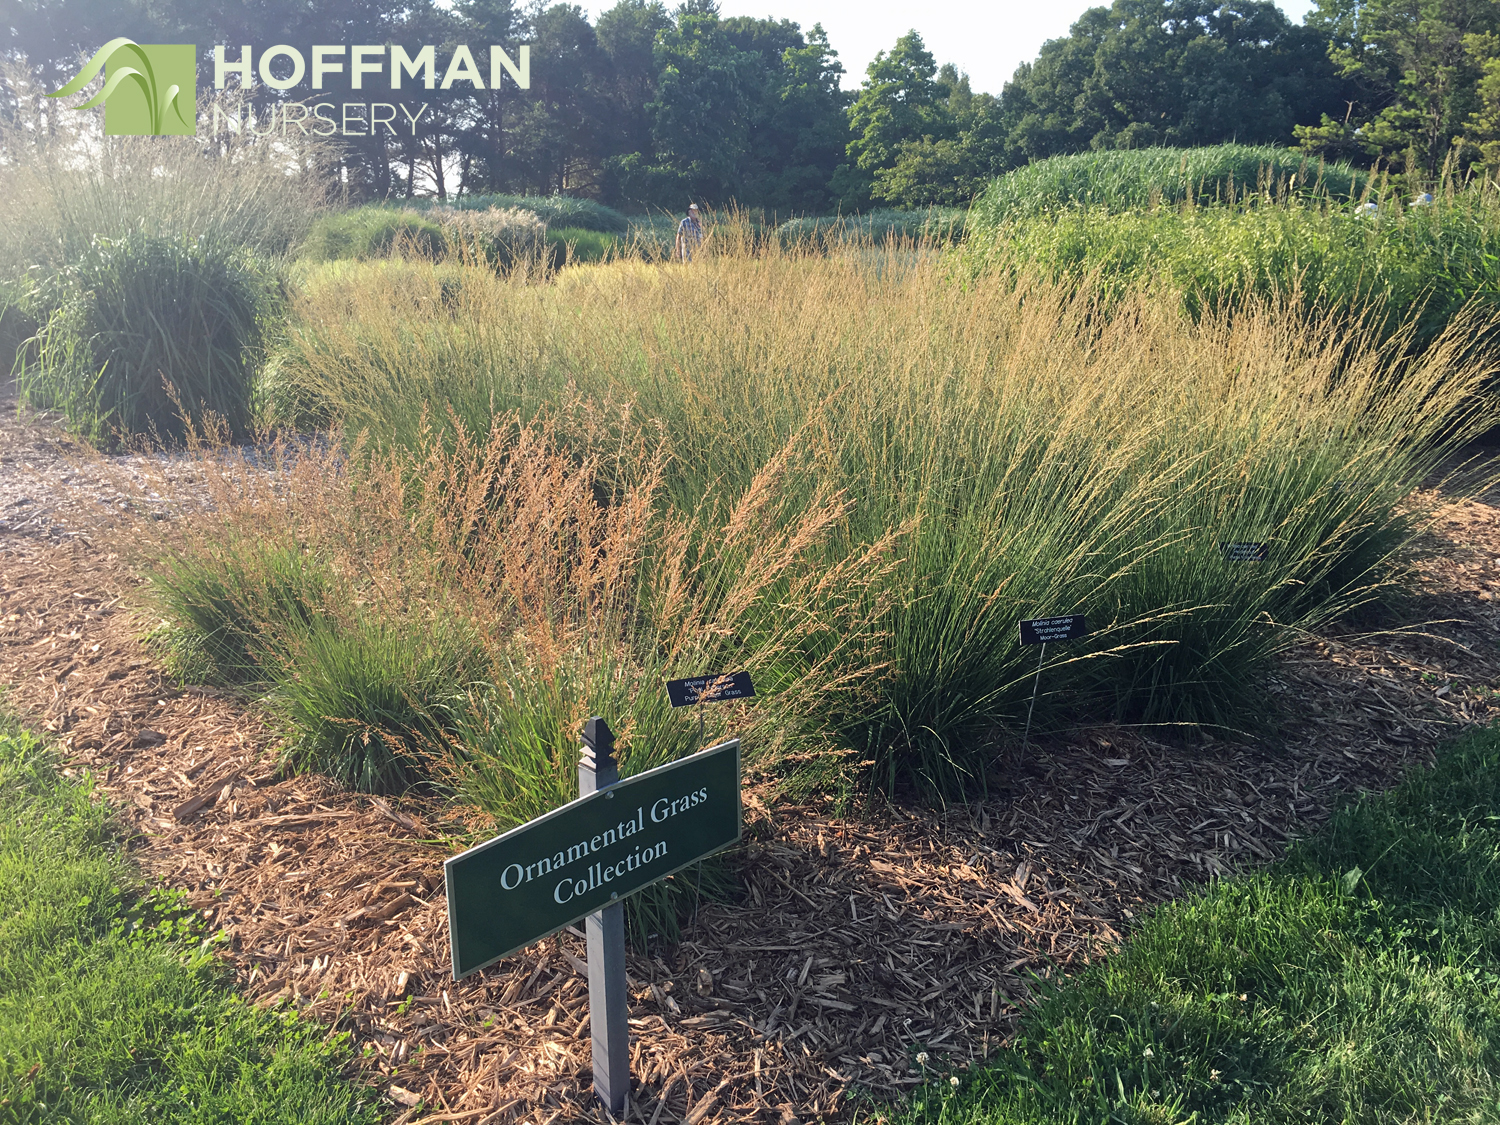 The Minnesota Landscape Arboretum's Ornamental Grass Collection send shivers through grass admirers.